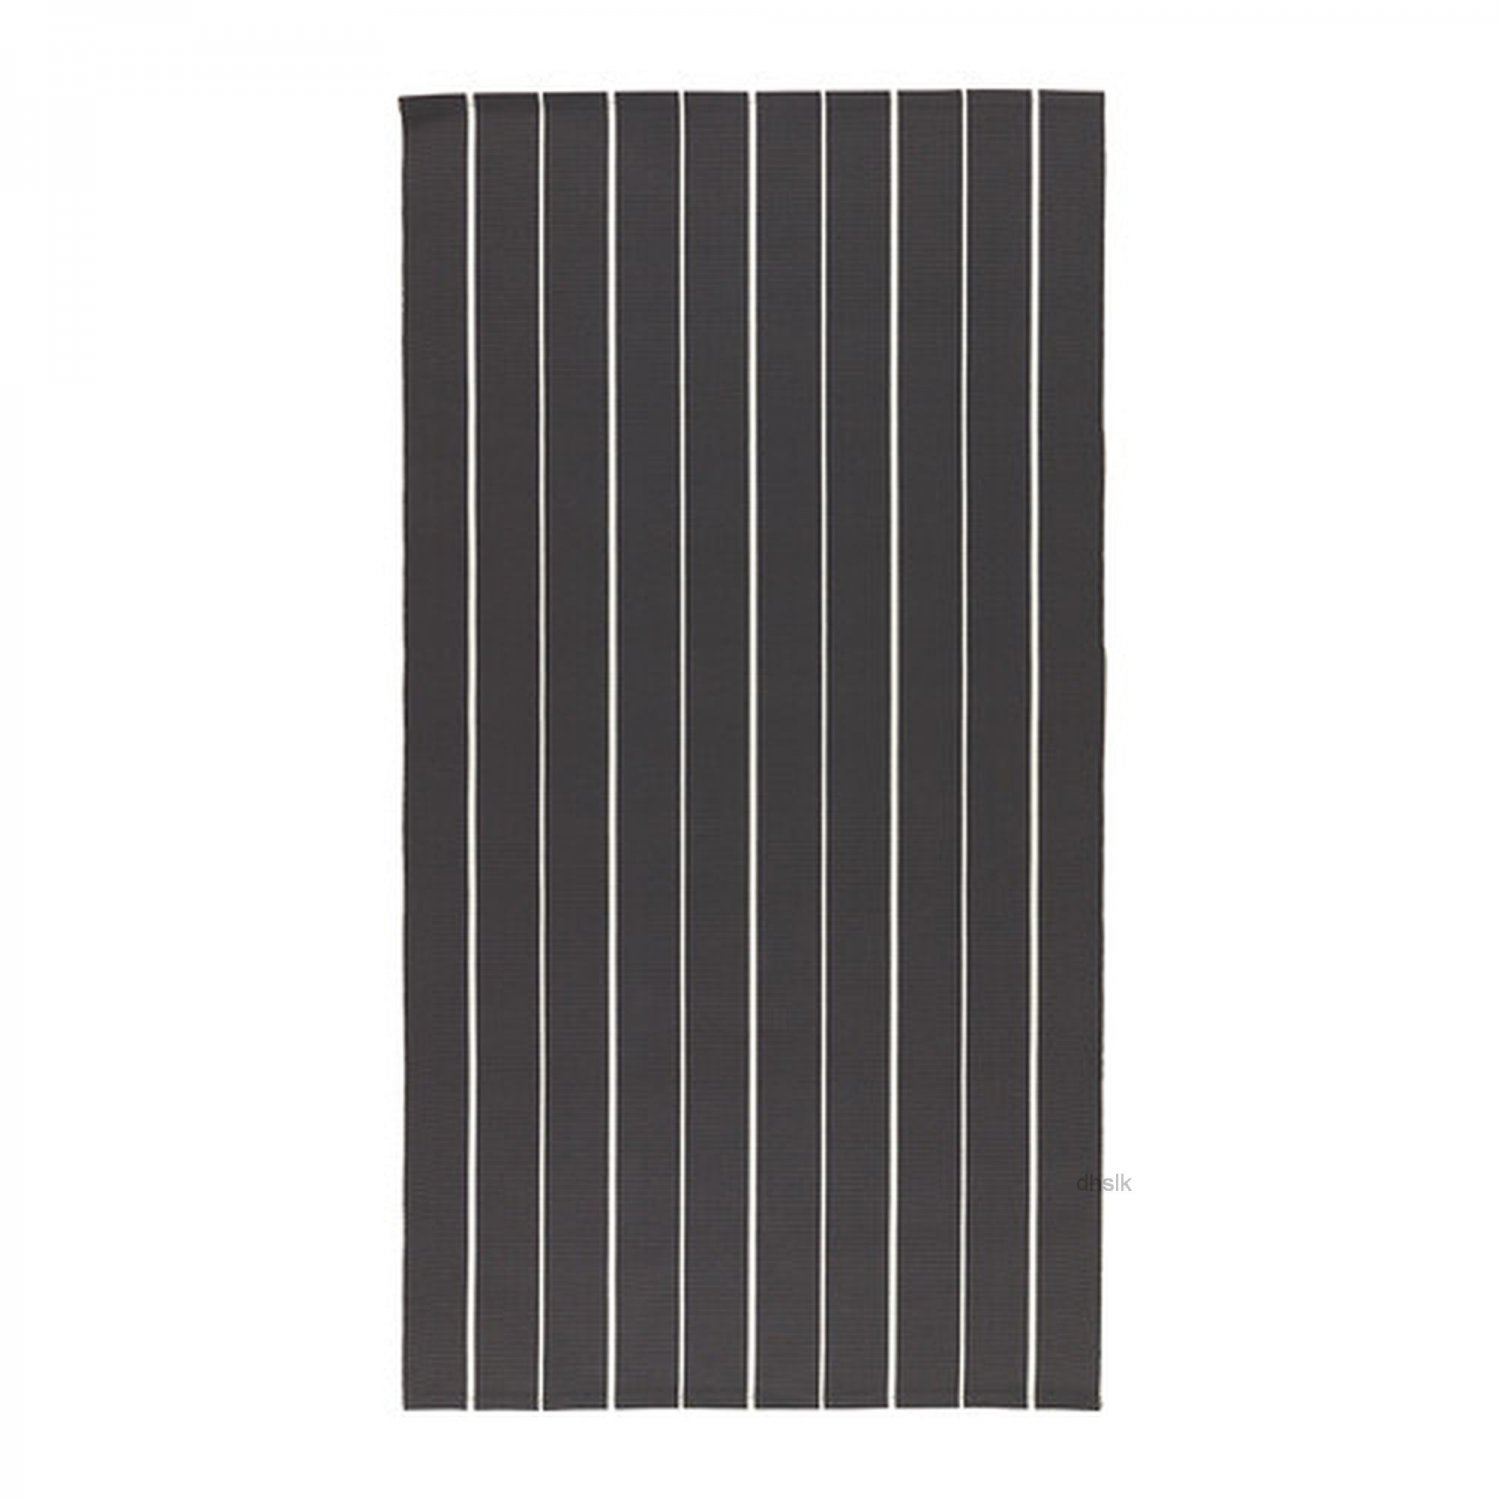 ikea soften black white stripes area throw rug mat reversible flatwoven s ften gray. Black Bedroom Furniture Sets. Home Design Ideas